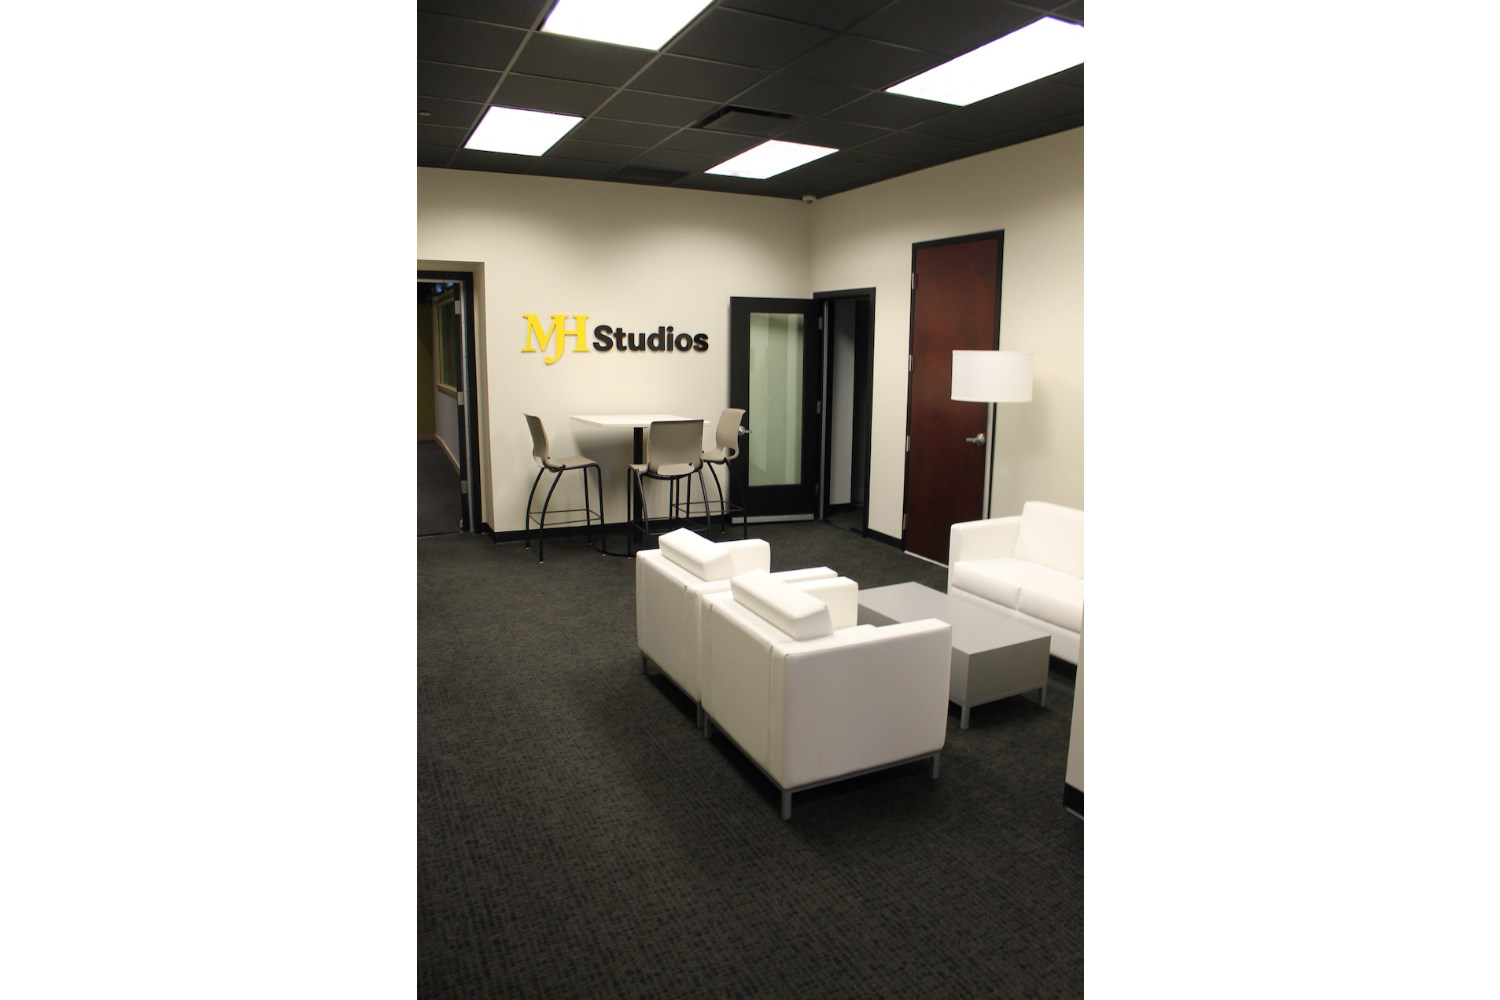 MJH Studios in NJ, designed by WSDG, is a world-class recording and production facility for the main use of creating audio and video healthcare-related content by MJH for their clients. Lobby